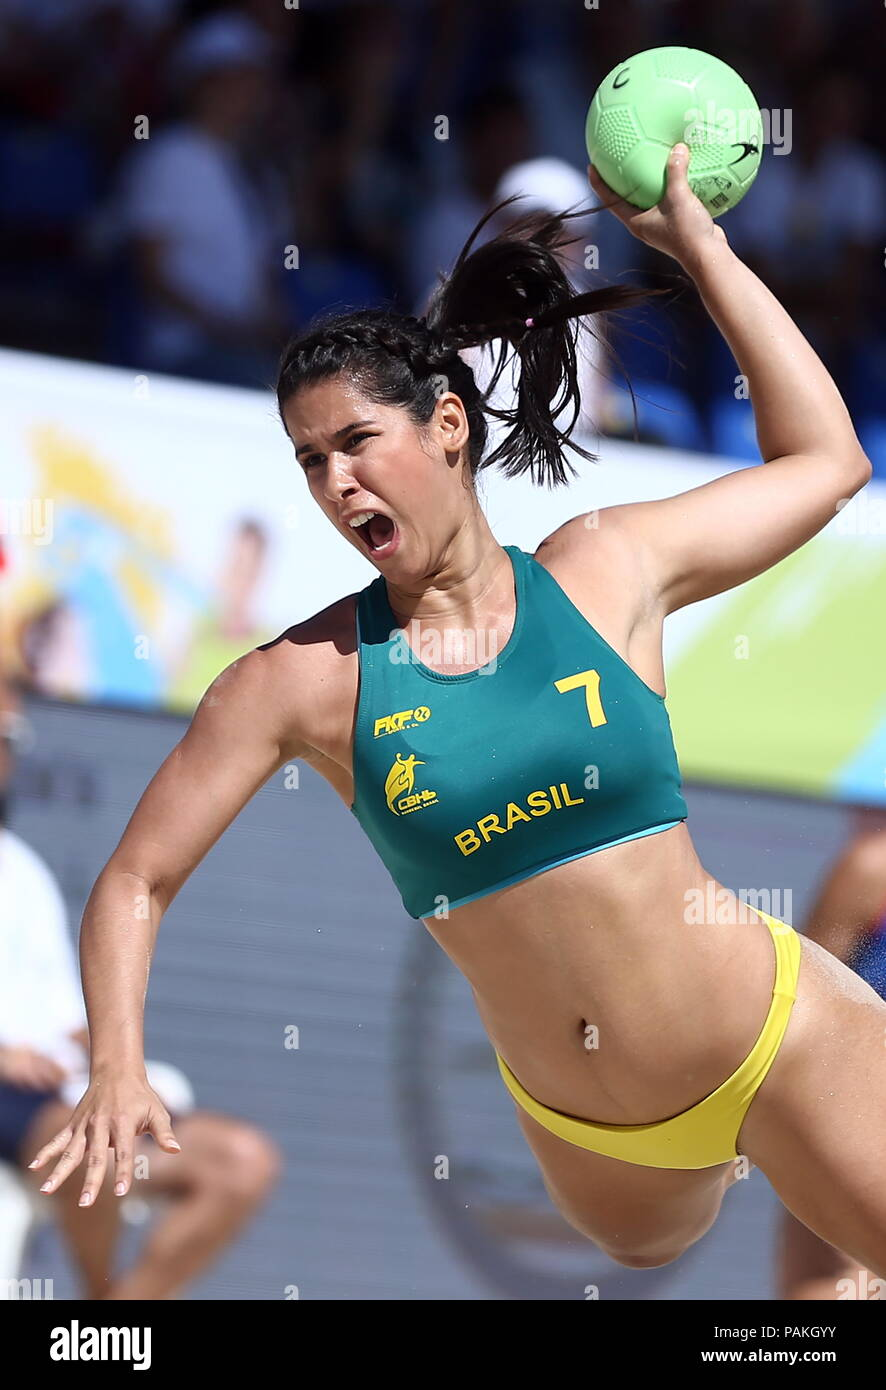 Kazan, Russia. 24th July, 2018. KAZAN, RUSSIA - JULY 24, 2018: Brazil's Juliana Olivera in action in a beach handball match against Russia at the 2018 IHF Men's and Women's Beach Handball World Championships held in Kazan. Yegor Aleyev/TASS Credit: ITAR-TASS News Agency/Alamy Live News - Stock Image